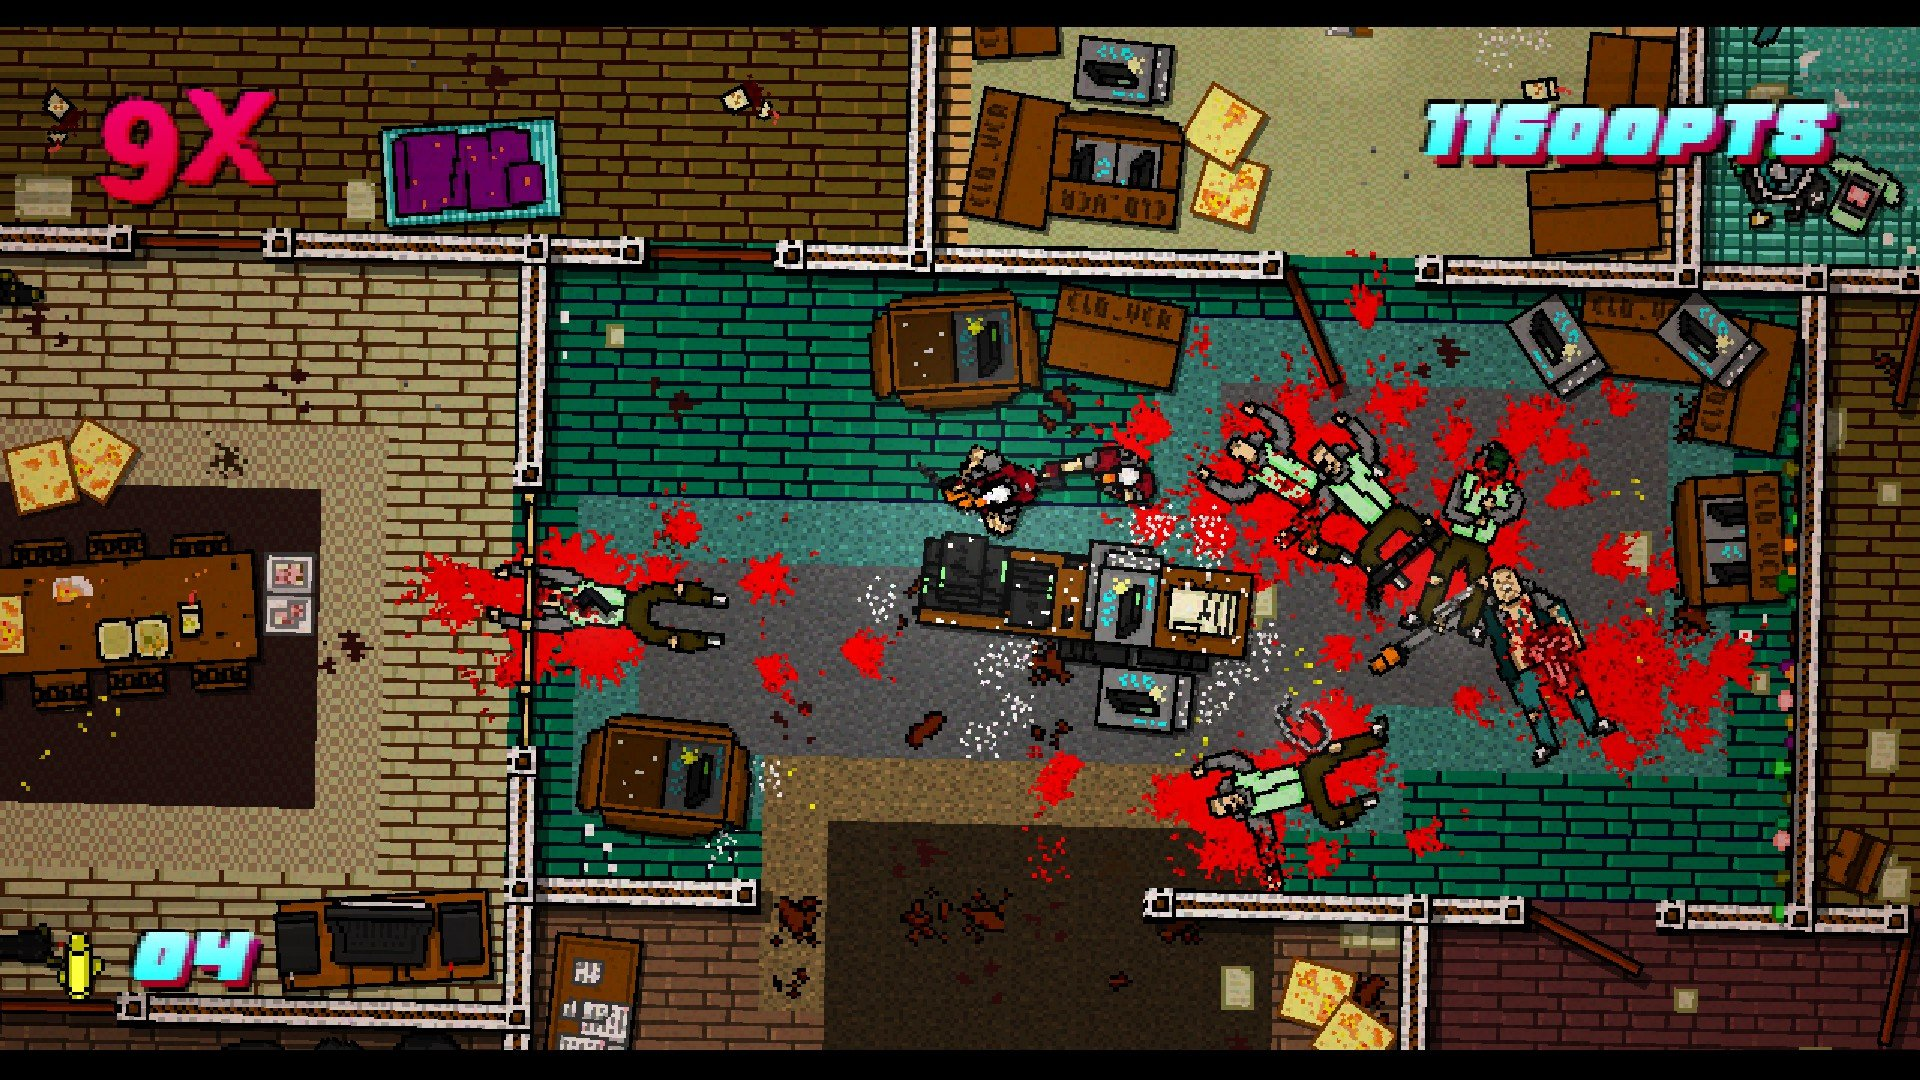 Hotline Miami 2 - Level Editor